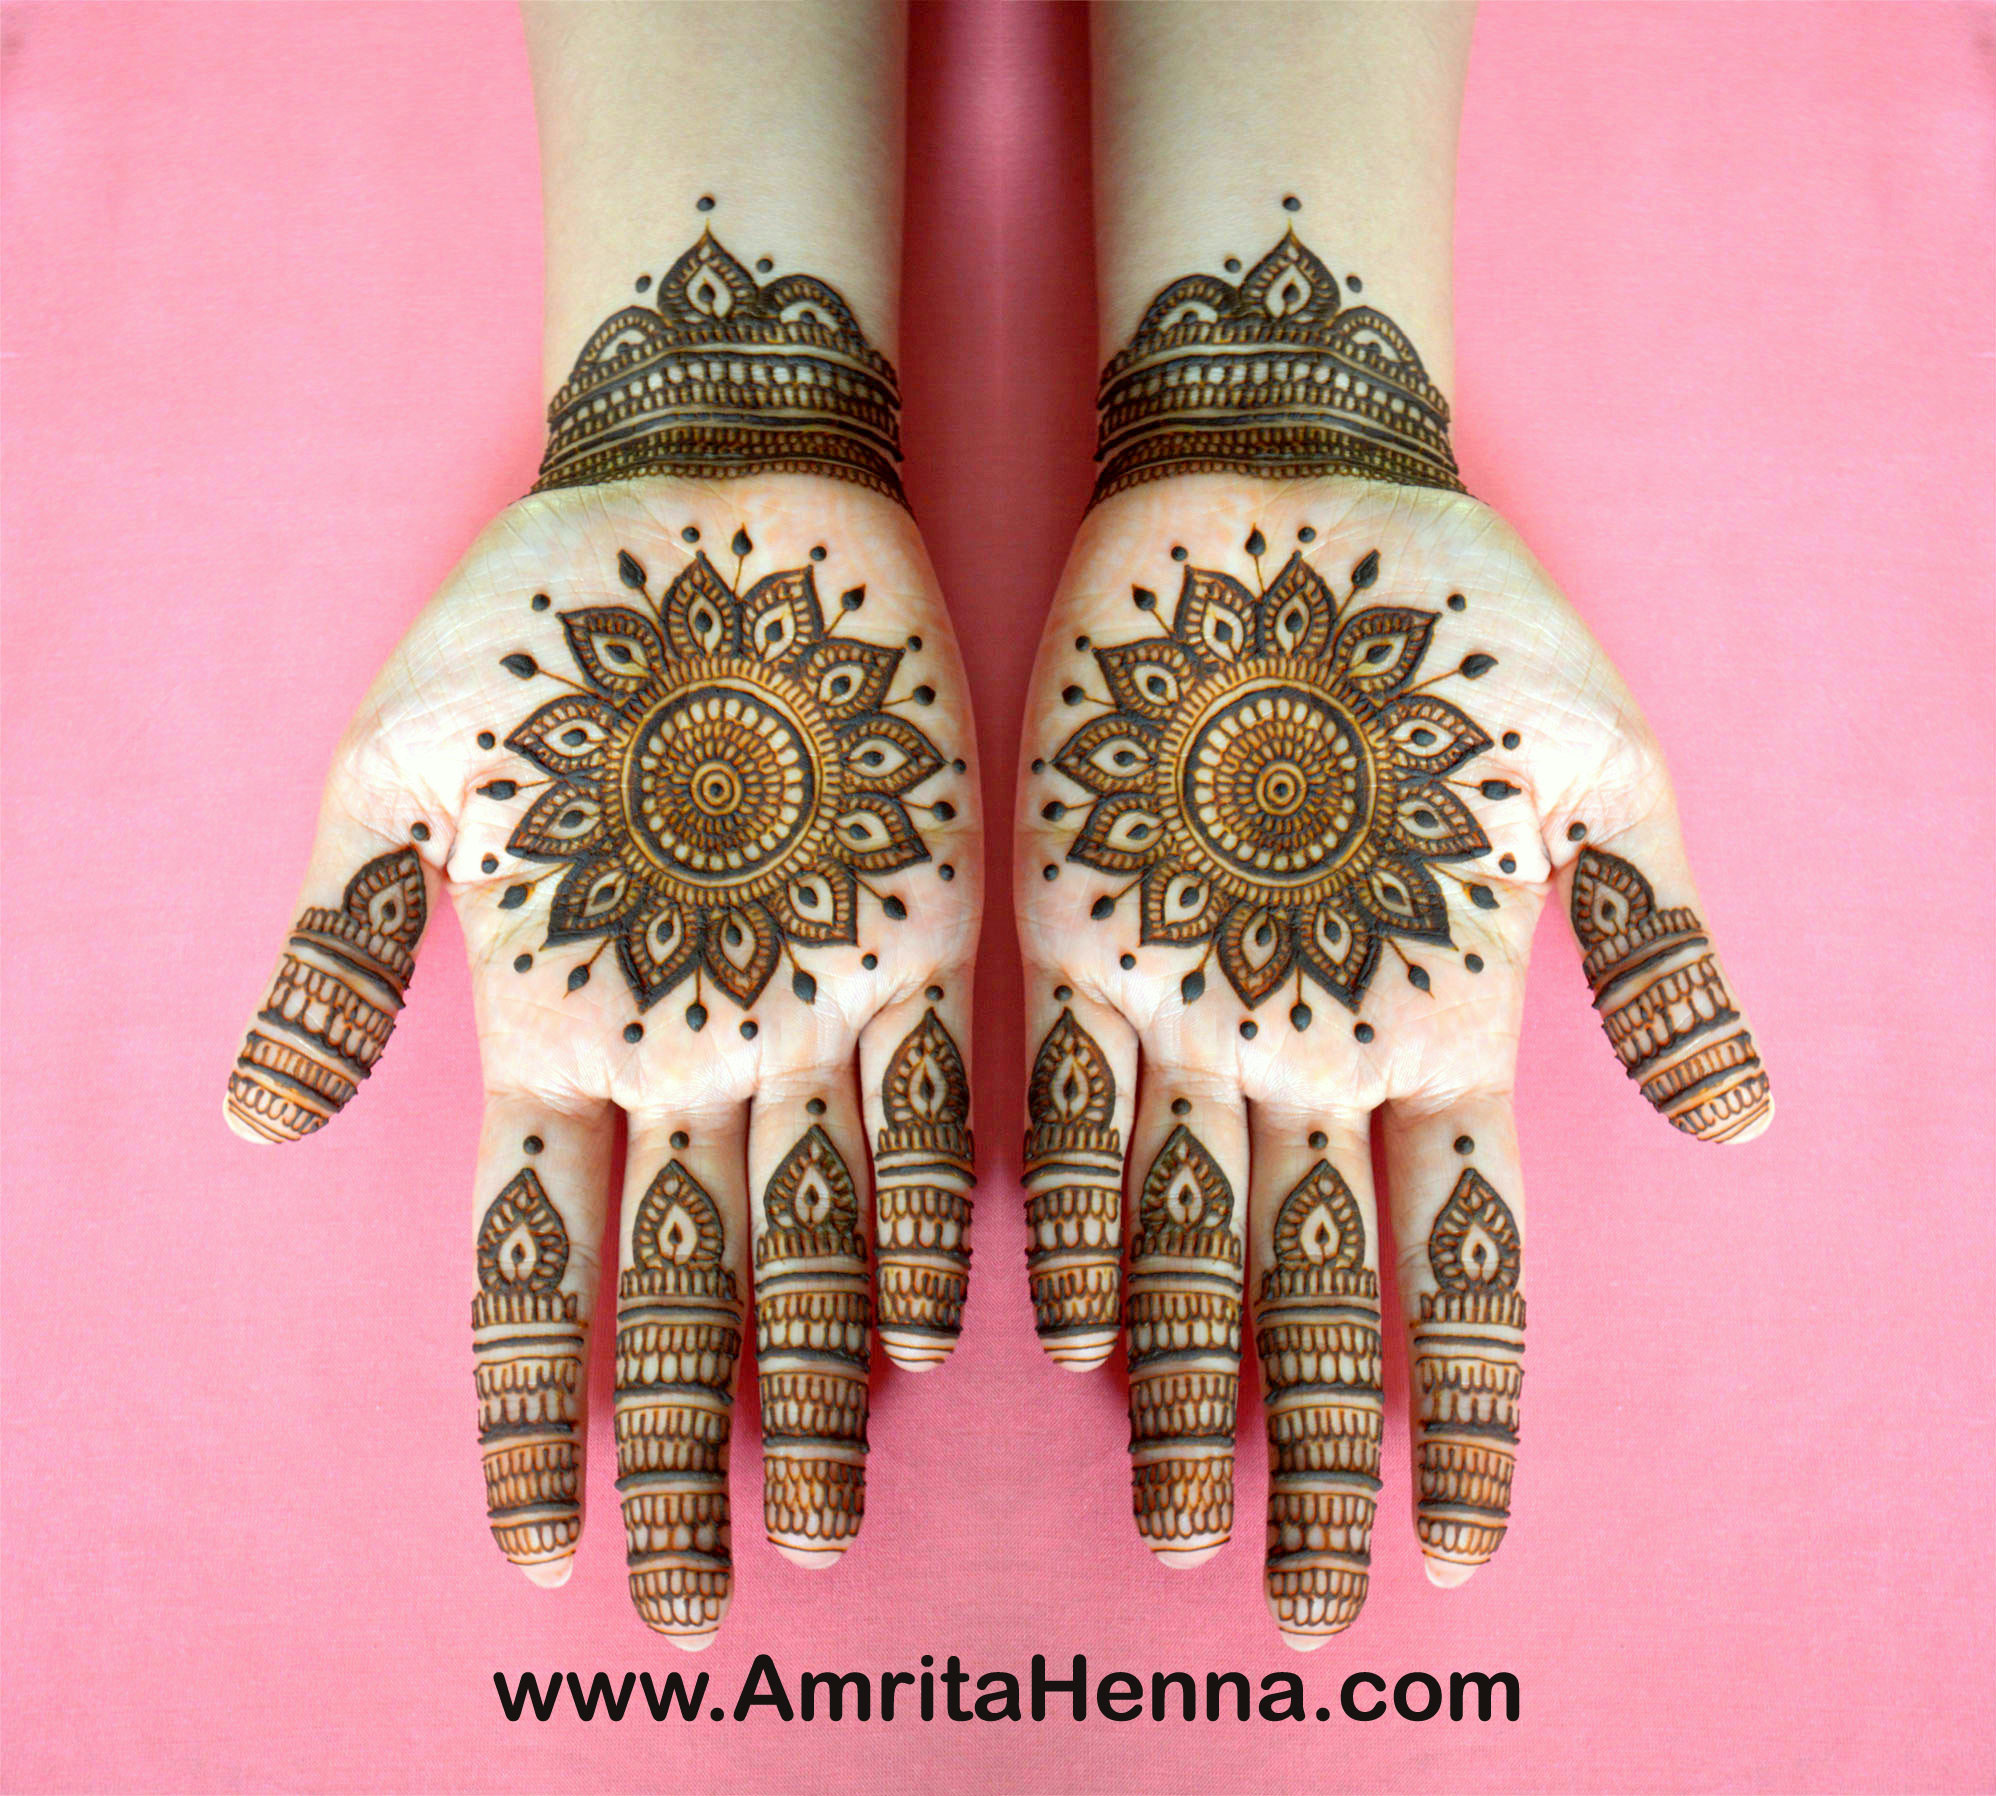 TOP 10 RAJASTHANI BRIDAL MEHNDI DESIGNS FOR FULL HANDS - 10 BEST MARWARI WEDDING MEHENDI DESIGNS FOR HANDS AND FEET - 10 STUNNING INTRICATE TRADITIONAL BRIDAL MEHNDI DESIGNS TO INSPIRE YOU - 10 BEAUTIFUL INDIAN BRIDAL HENNA DESIGNS - 10 MUST TRY RAJASTHANI STYLE DULHAN MEHANDI DESIGNS - 10 NEW AND STYLISH INDIAN WEDDING MEHNDI DESIGNS - 10 LATEST AND UNSEEN RAJASTHANI STYLE MARWARI MEHENDI DESIGNS FOR INDIAN BRIDE - TRADITIONAL INDIAN BRIDAL HENNA MEHNDI DESIGNS -  TOP 10 AMAZING MEHENDI HENNA DESIGNS FOR THE BRIDE TO BE - 10 AWESOME TRADITIONAL INDIAN WEDDING MEHANDI DESIGN IDEAS FOR THE INDIAN BRIDE - 10 MUST TRY RAJASTHANI MEHENDI HENNA DESIGNS THAT WILL AMAZE YOU - 10 BEST TRADITIONAL BRIDAL HENNA DESIGNS WITH PHOTOS - TRADITIONAL MEHANDI DESIGNS - INDIAN WEDDING BRIDAL HENNA PHOTOS - INDIAN WEDDING HENNA CEREMONY DESIGN IDEAS - 10 BRIDAL MEHENDI DESIGNS WITH PHOTOS - TOP 10 BRIDAL HENNA MEHNDI DESIGNS FOR THIS WEDDING SEASON